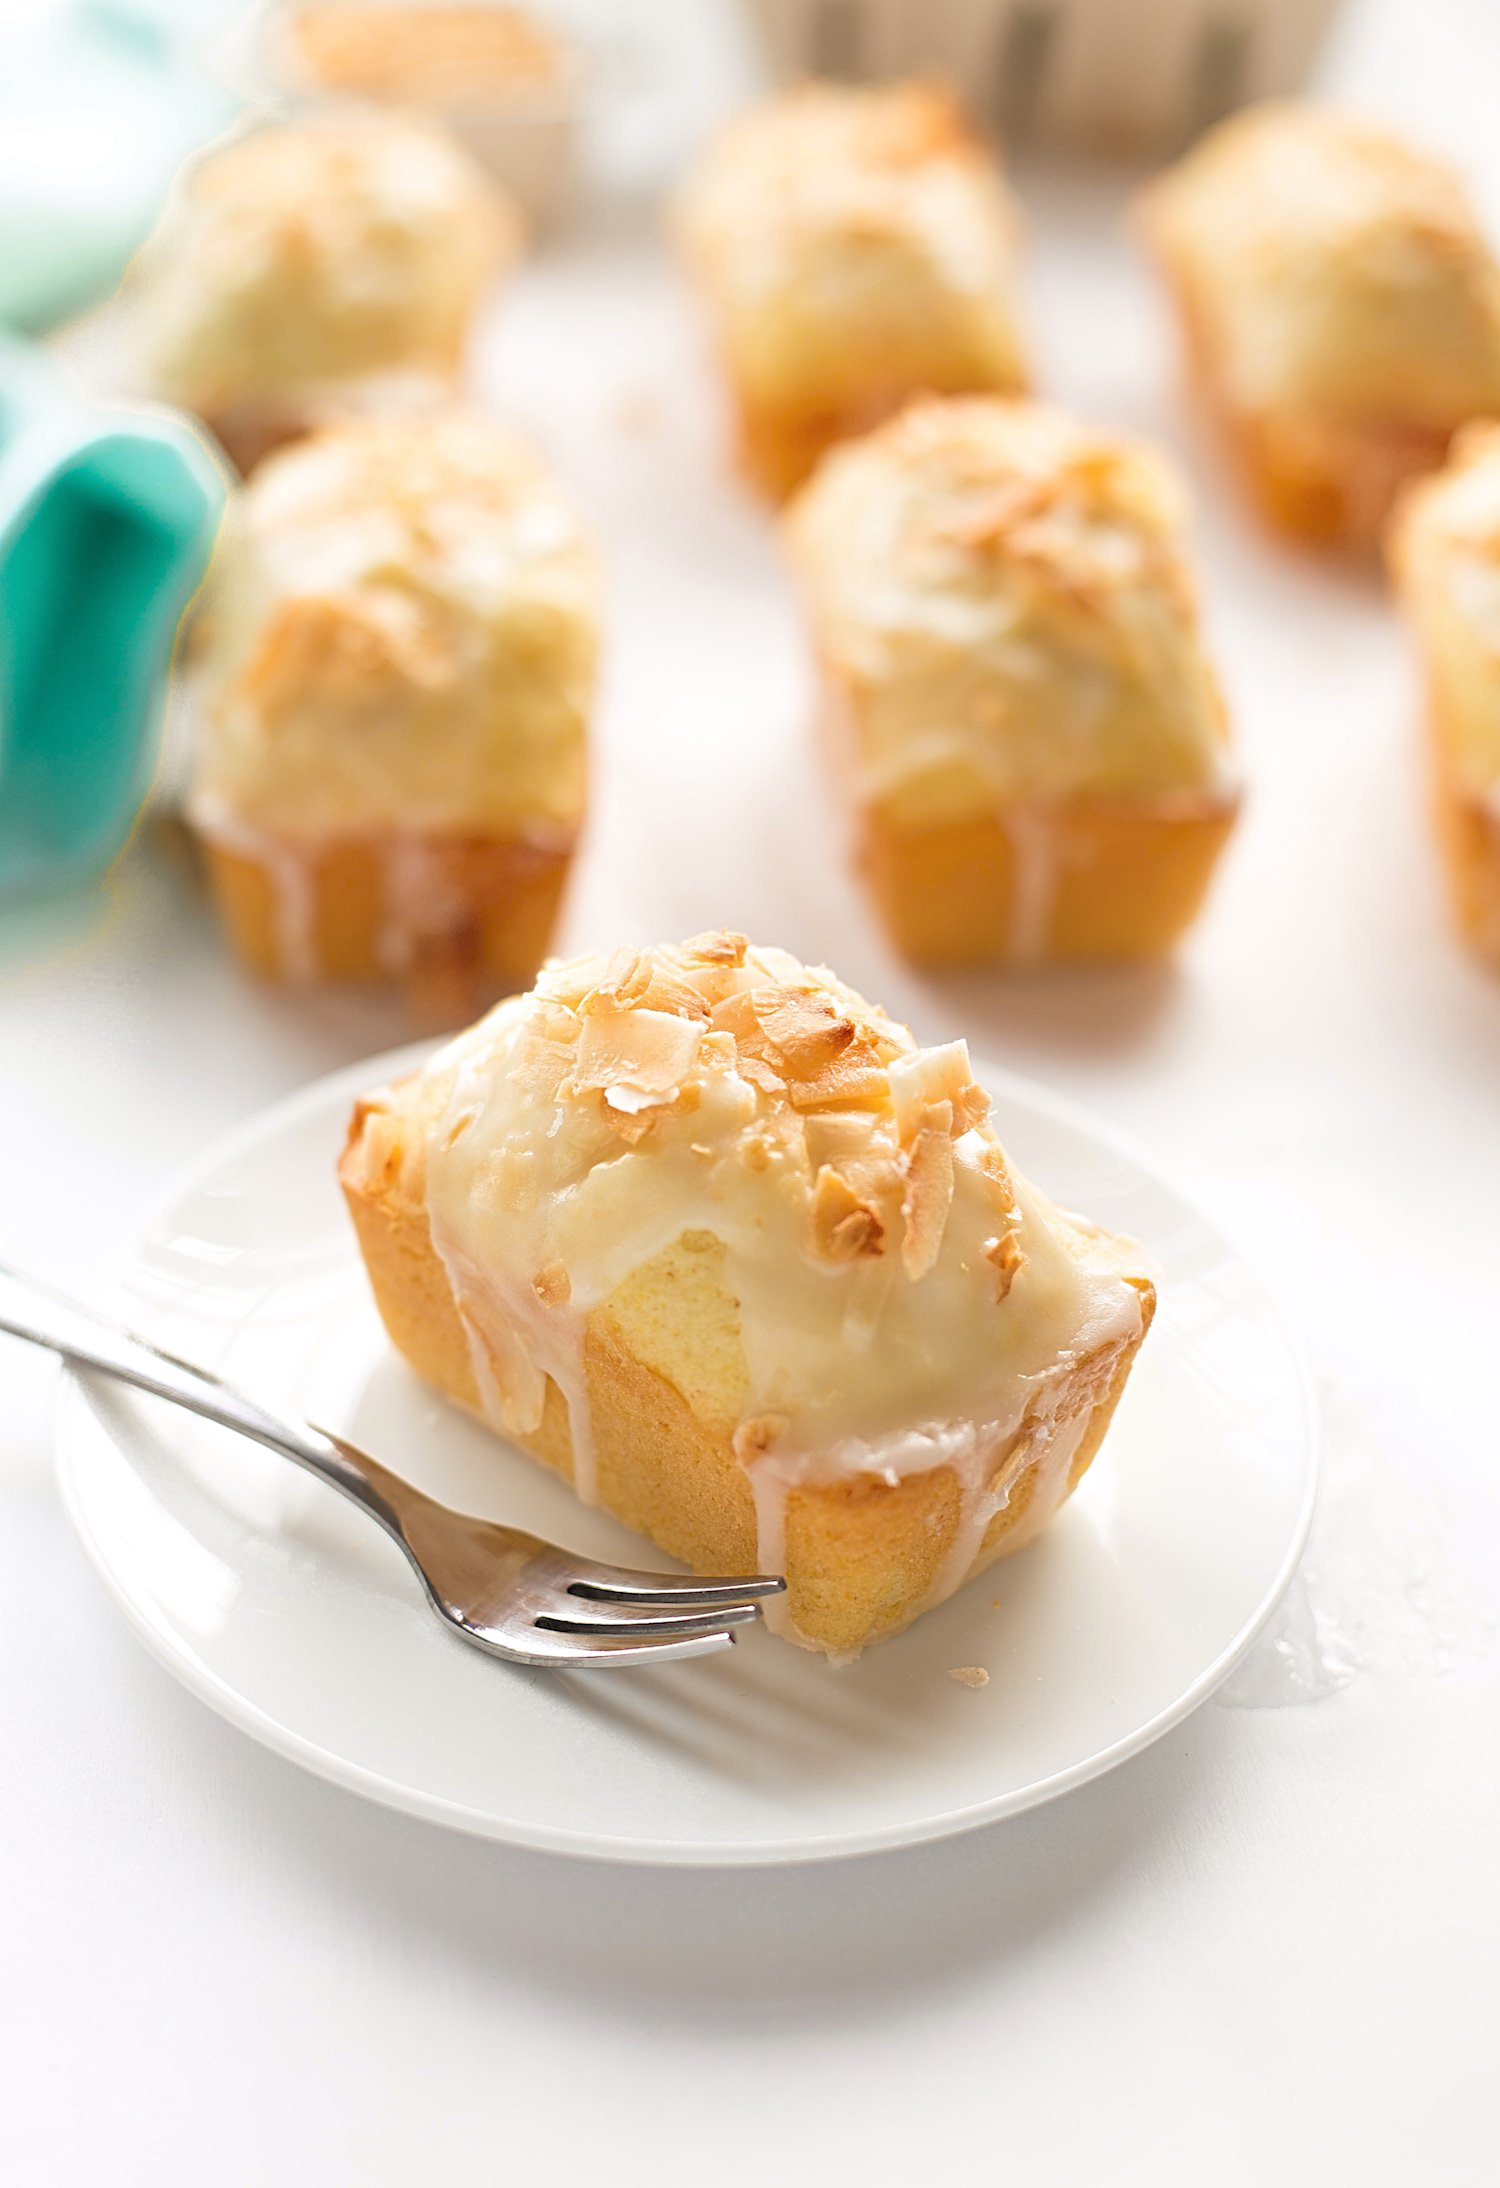 Mini Lemon Coconut Loaf Cakes: easy, soft, fluffy, loaf cakes full of lemon flavor and coconut flakes with a glossy, tangy glaze.   TrufflesandTrends.com